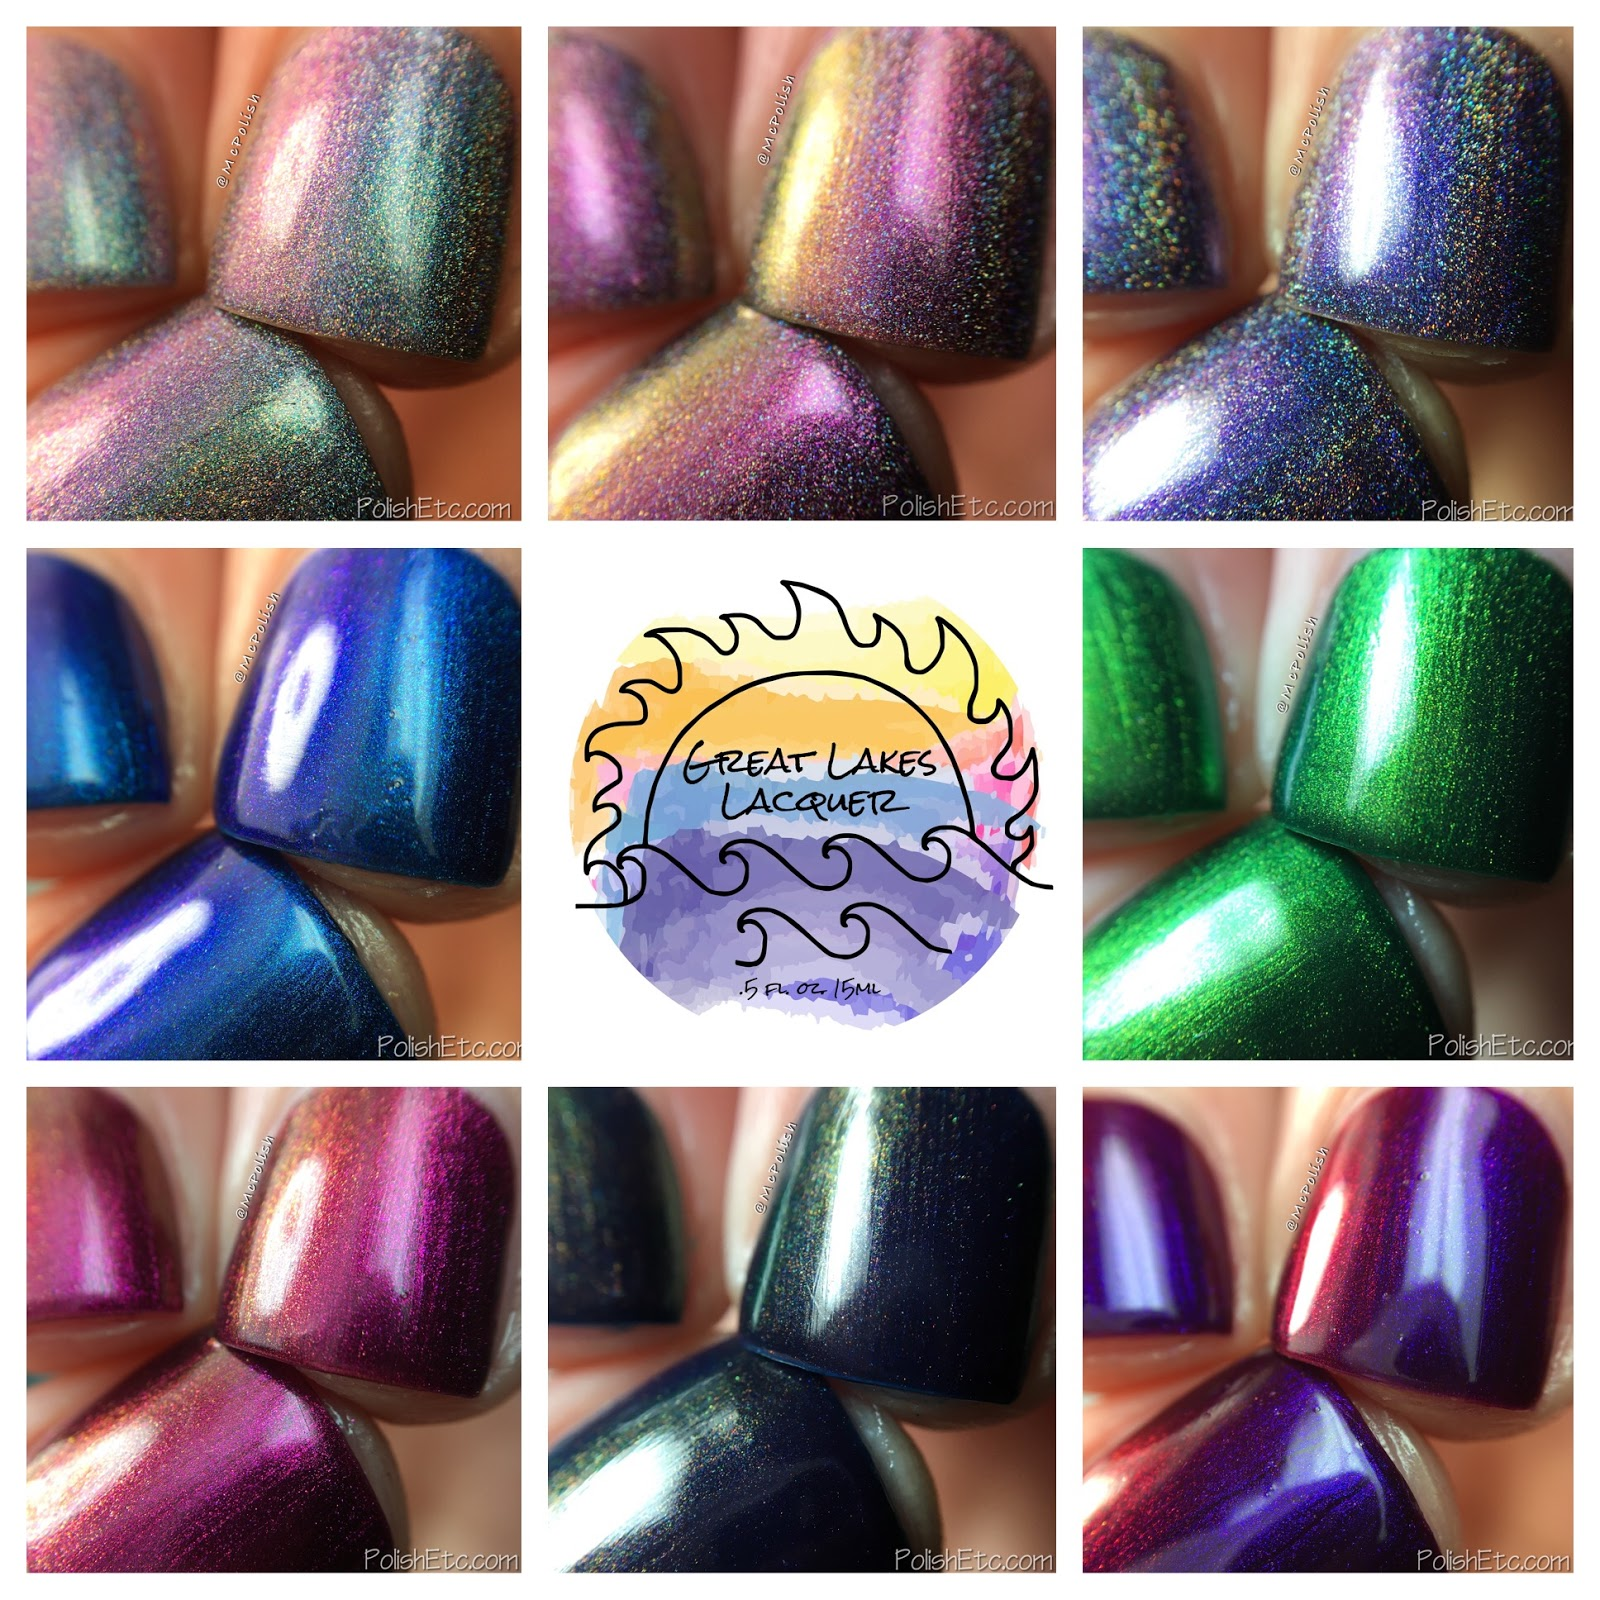 Great Lakes Lacquer - Polishing Poetic Collection - McPolish